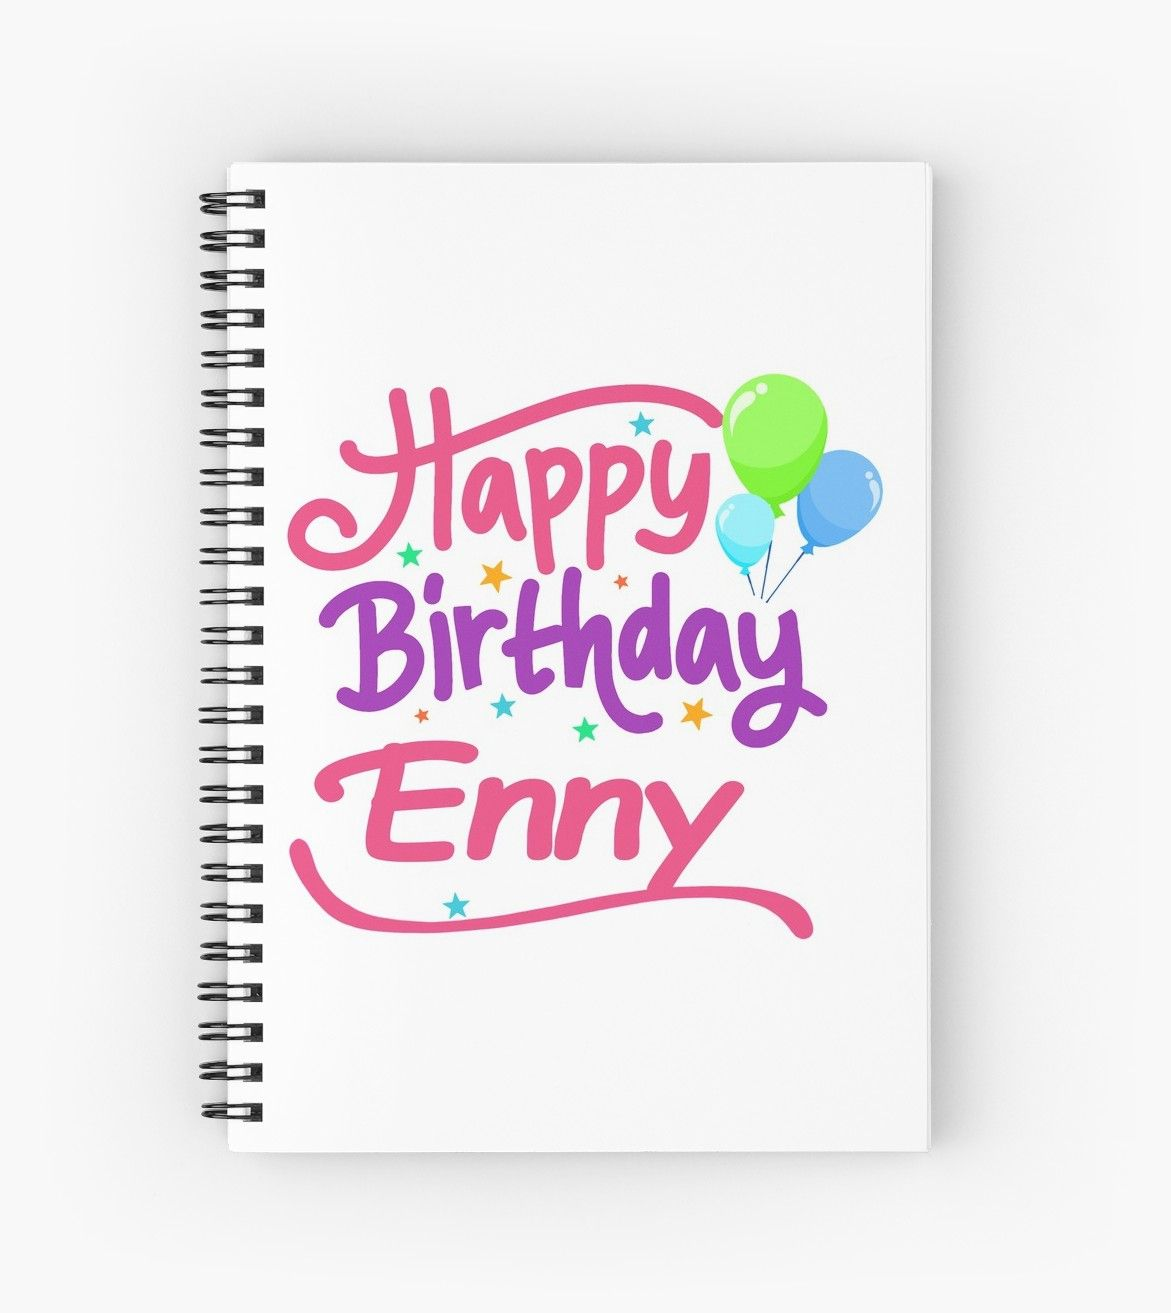 Happy Birthday Enny Spiral Notebook By Pm Names